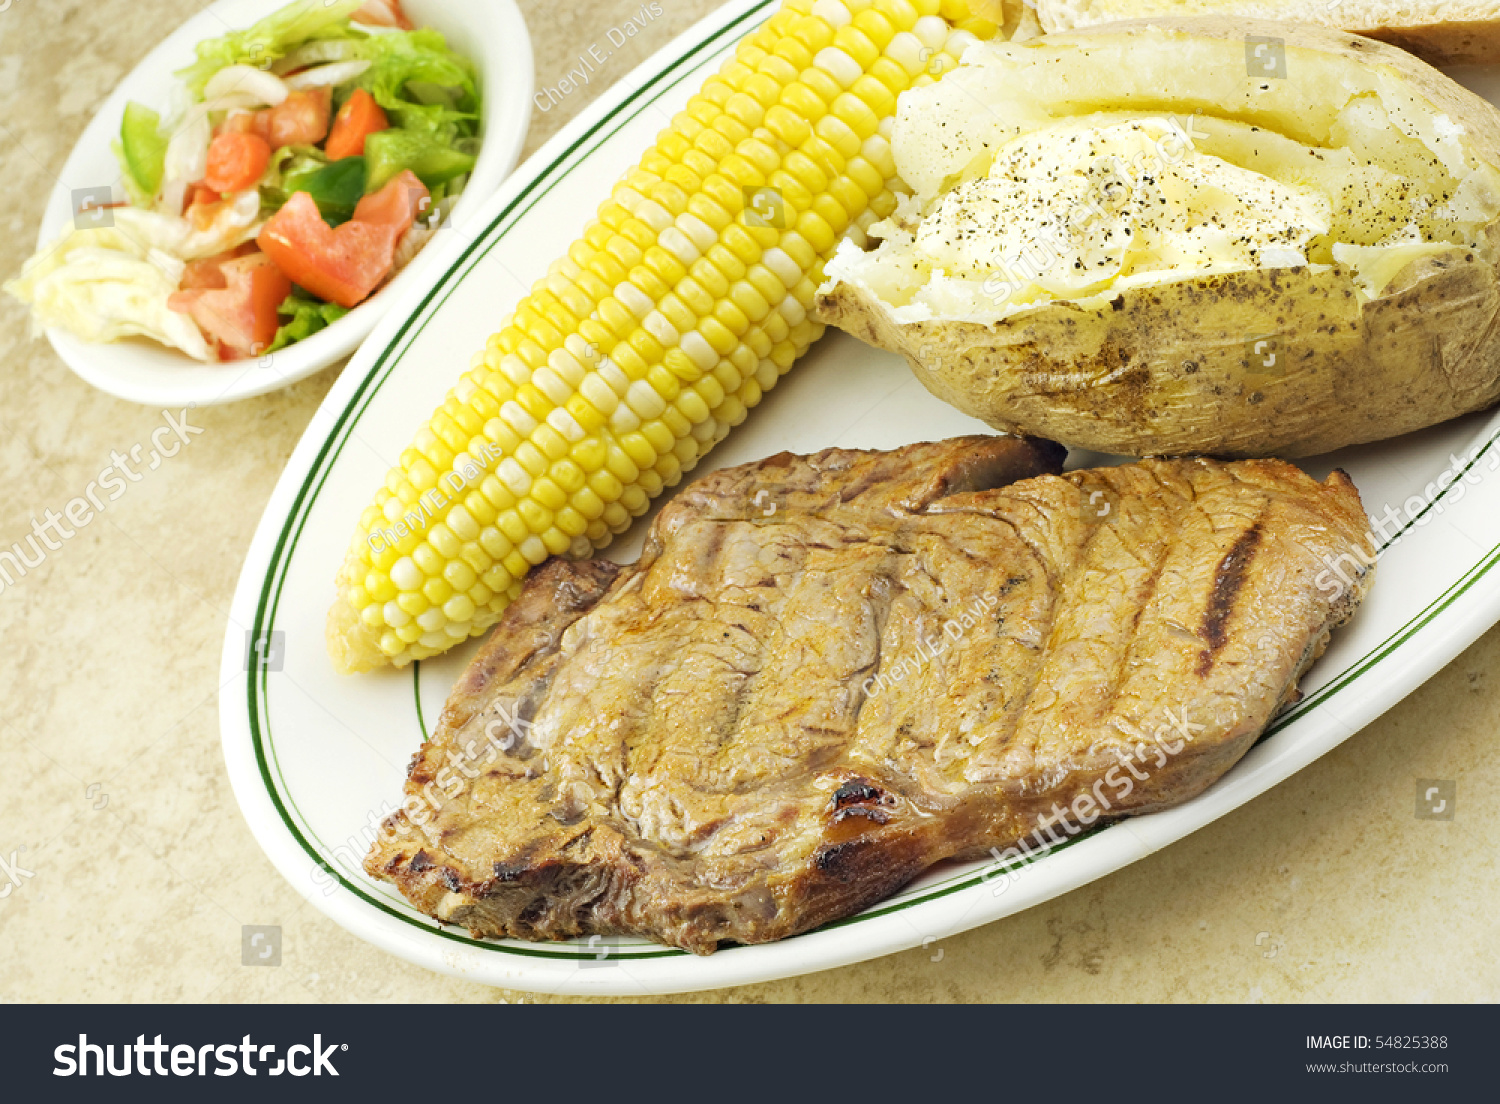 A Grilled Ribeye Steak Dinner With Corn, Baked Potato And ... | 1500 x 1104 jpeg 813kB